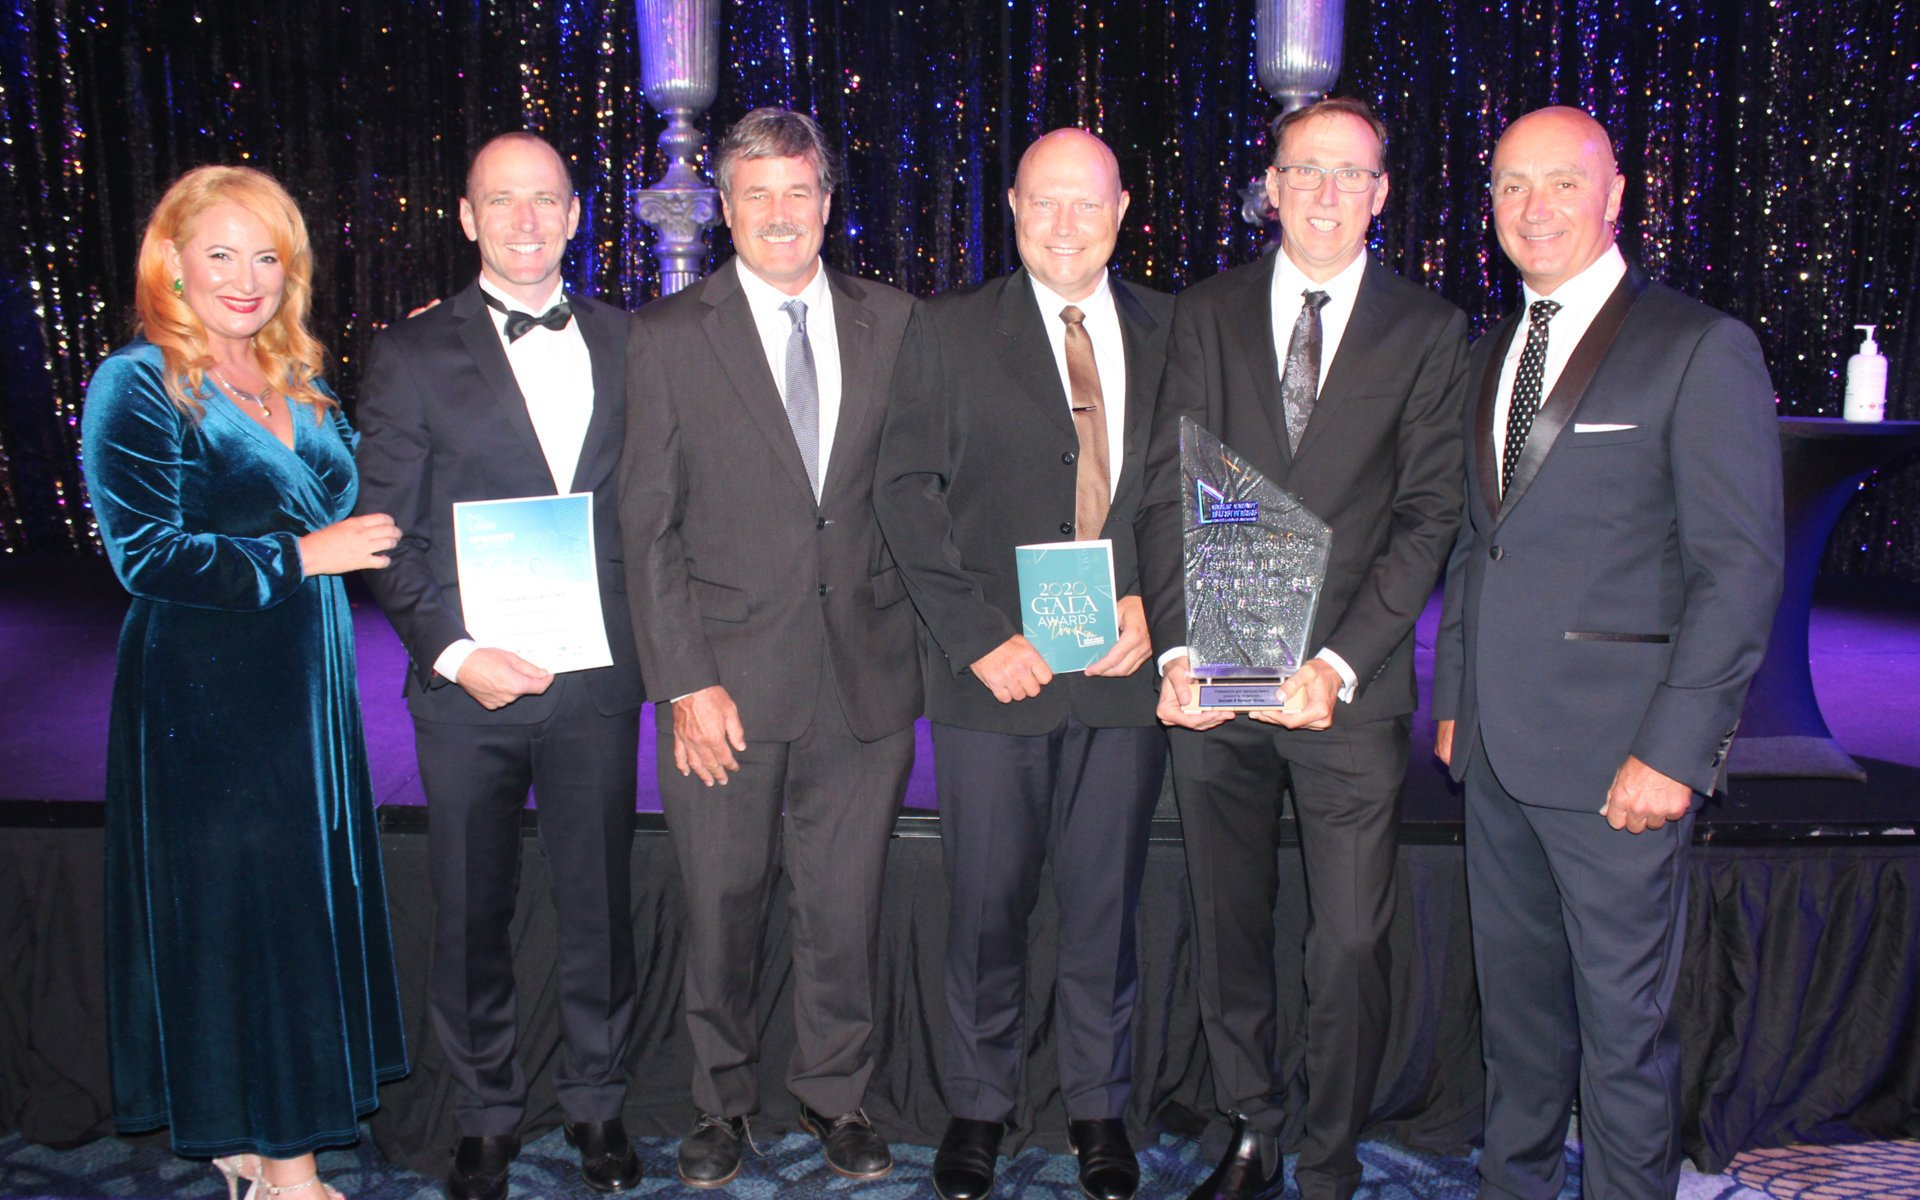 Bennett + Bennett win a Gold Coast Business Excellence Award (GCBEA) for 2020.